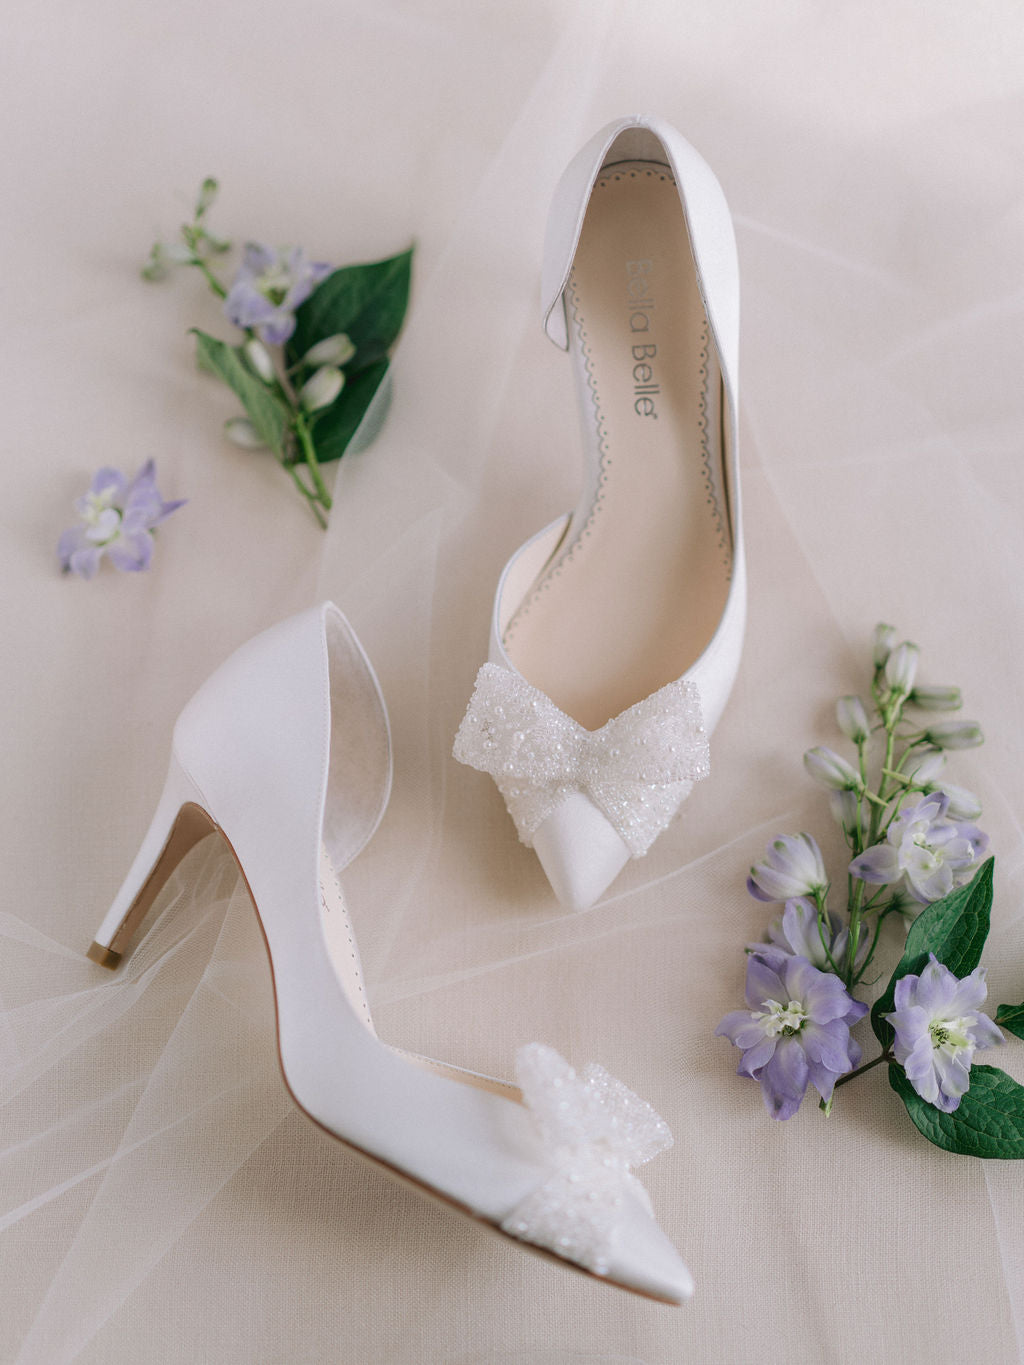 bella belle bridal trend bow wedding shoes dorothy 2020